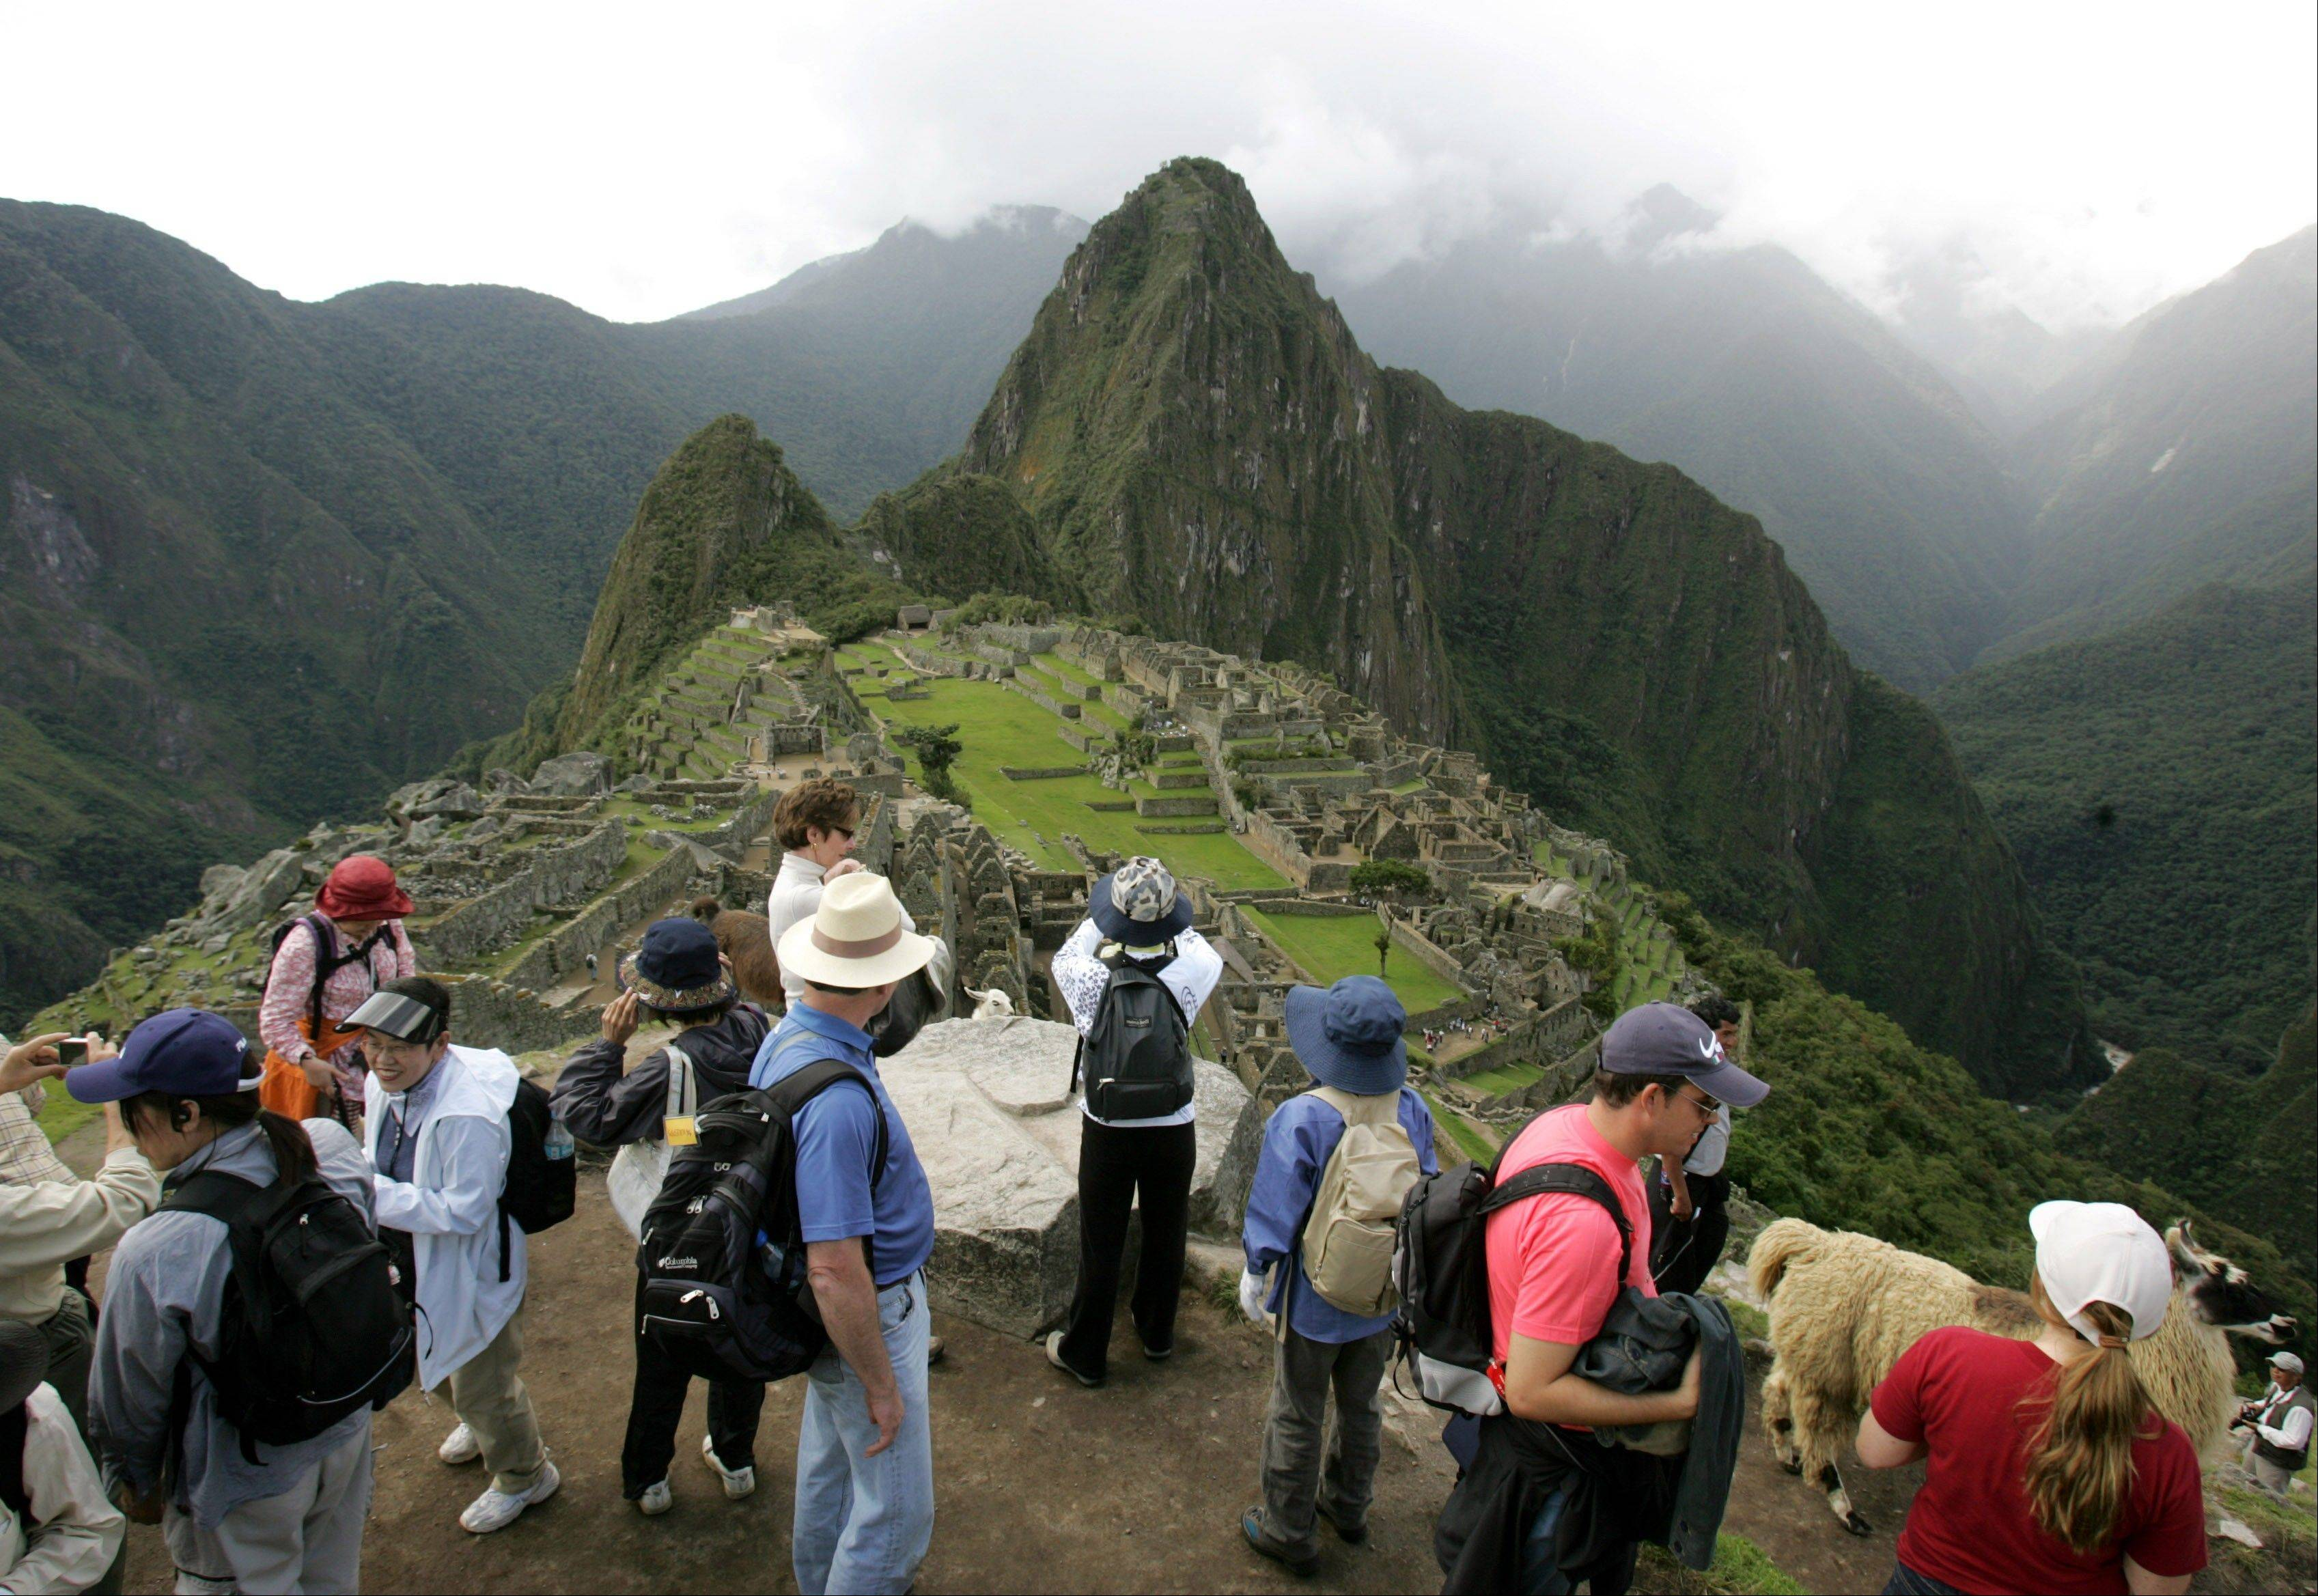 Tourists look at the Inca citadel of Machu Picchu in Peru. The government is looking to shift some of the tourist burden from Machu Picchu, to Choquequirao, with a plan to build the first aerial tramway that will make Choquequirao reachable in just 15 minutes from the nearest highway.